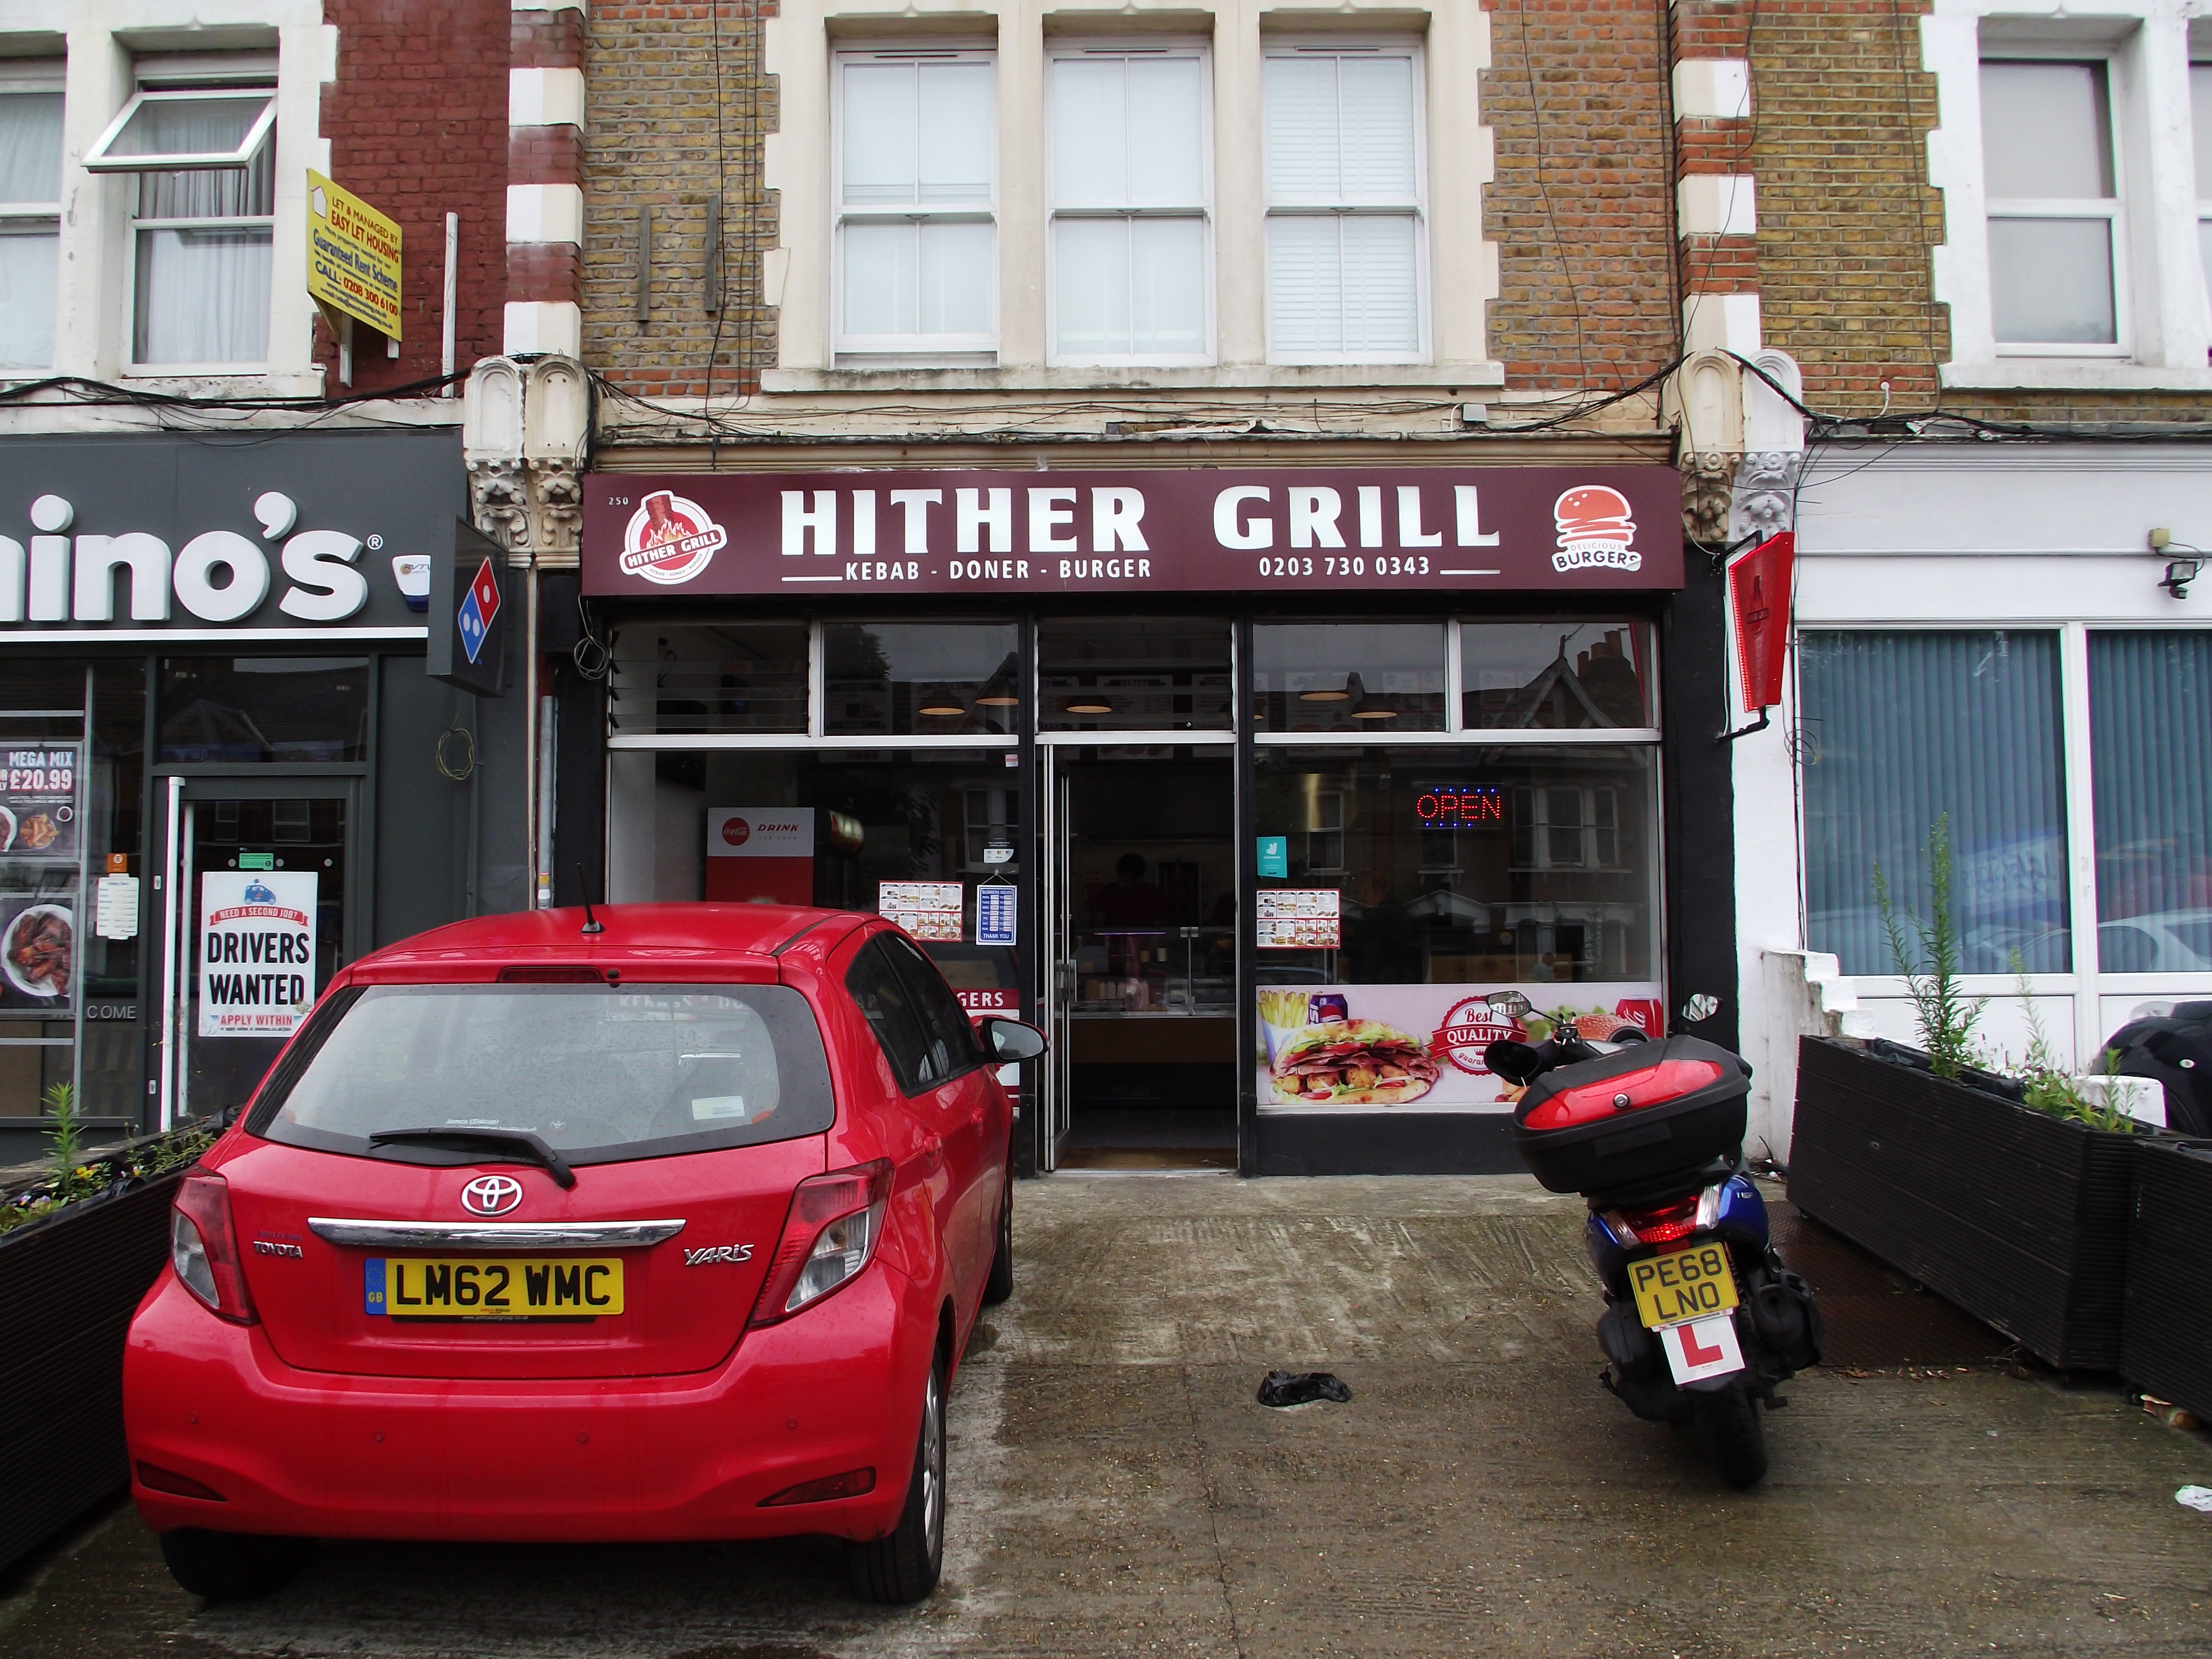 LEASE FOR SALE, Hither Grill, South East London. Ref. 1733